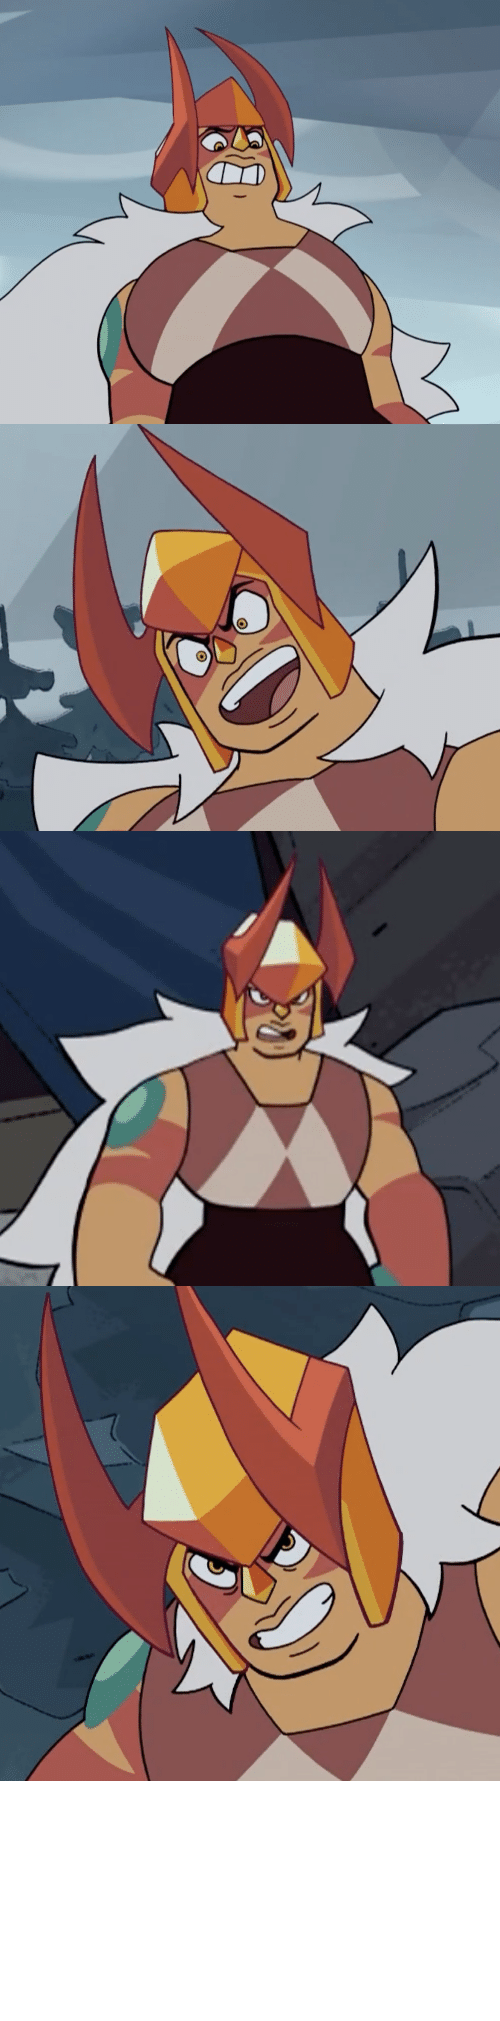 Sick: terrorbeaks: Ok but Jasper's helmet with the horns looks so sick.    Only good thing today apart from Doom Eternal